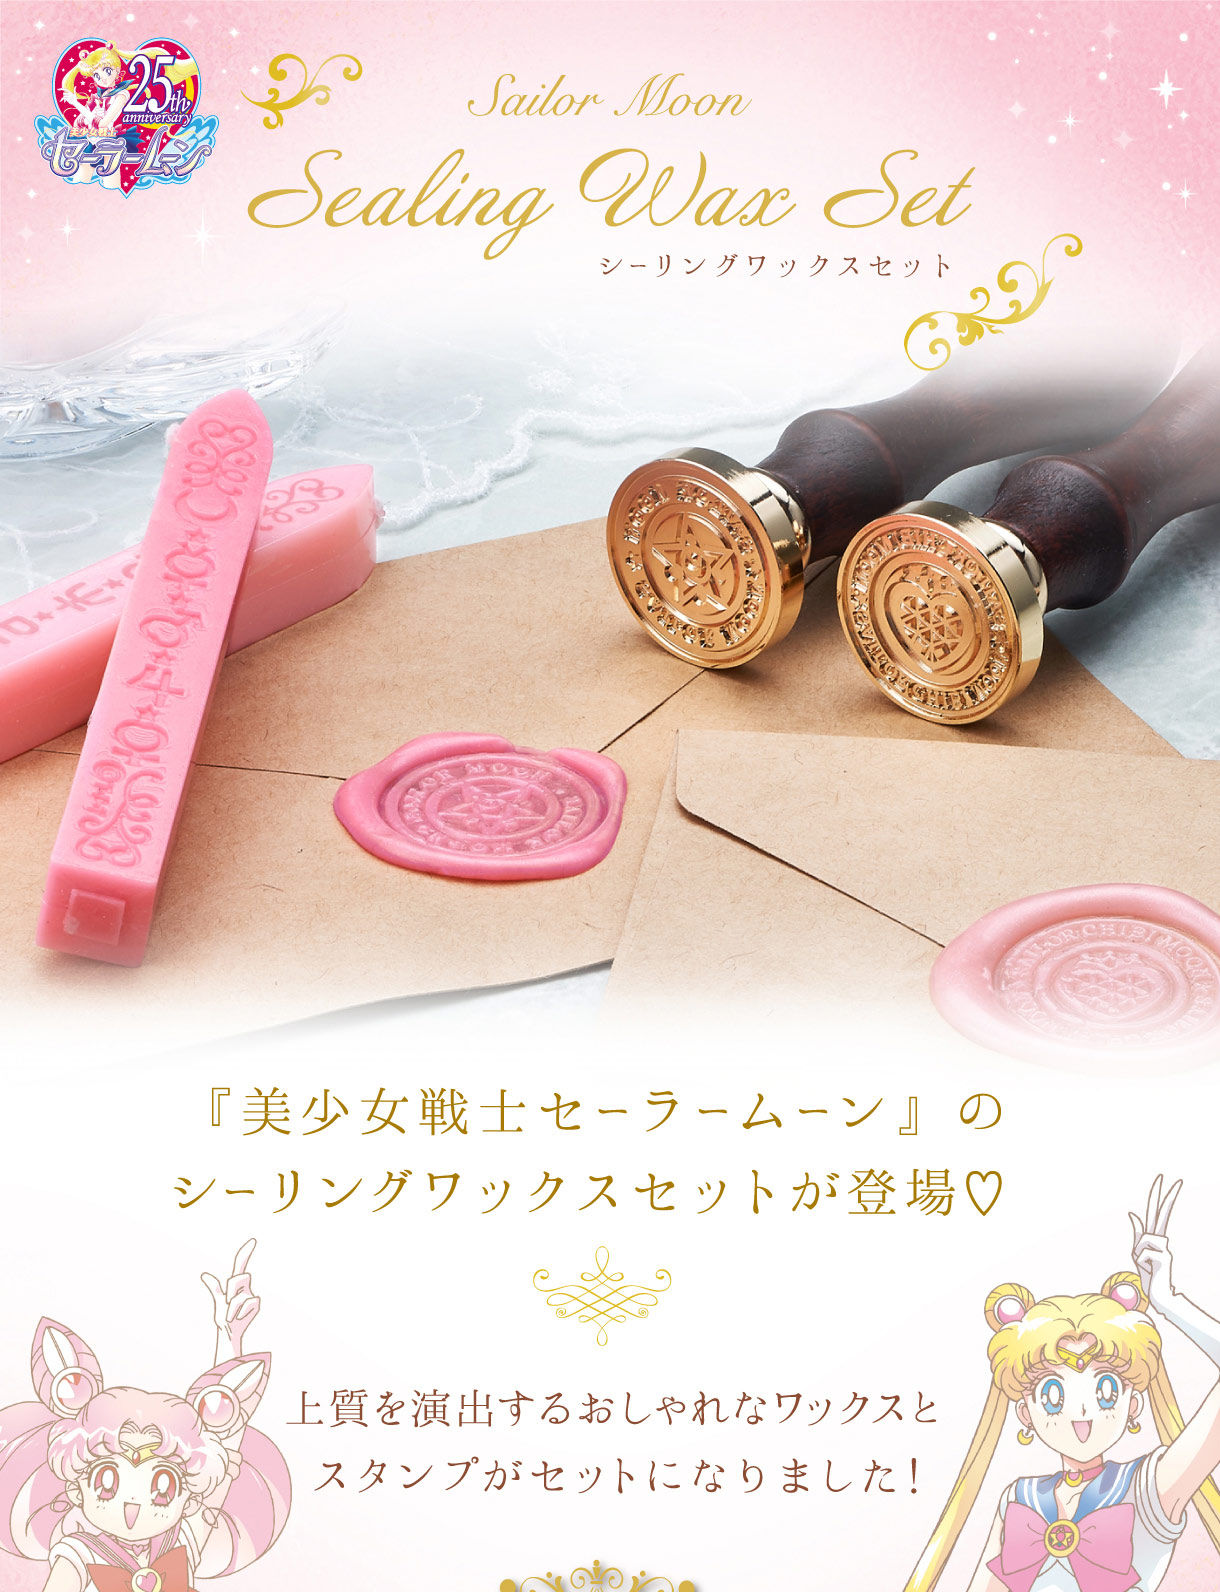 SAILOR MOON SEALING WAX SET 5 FRIGHTERS SET